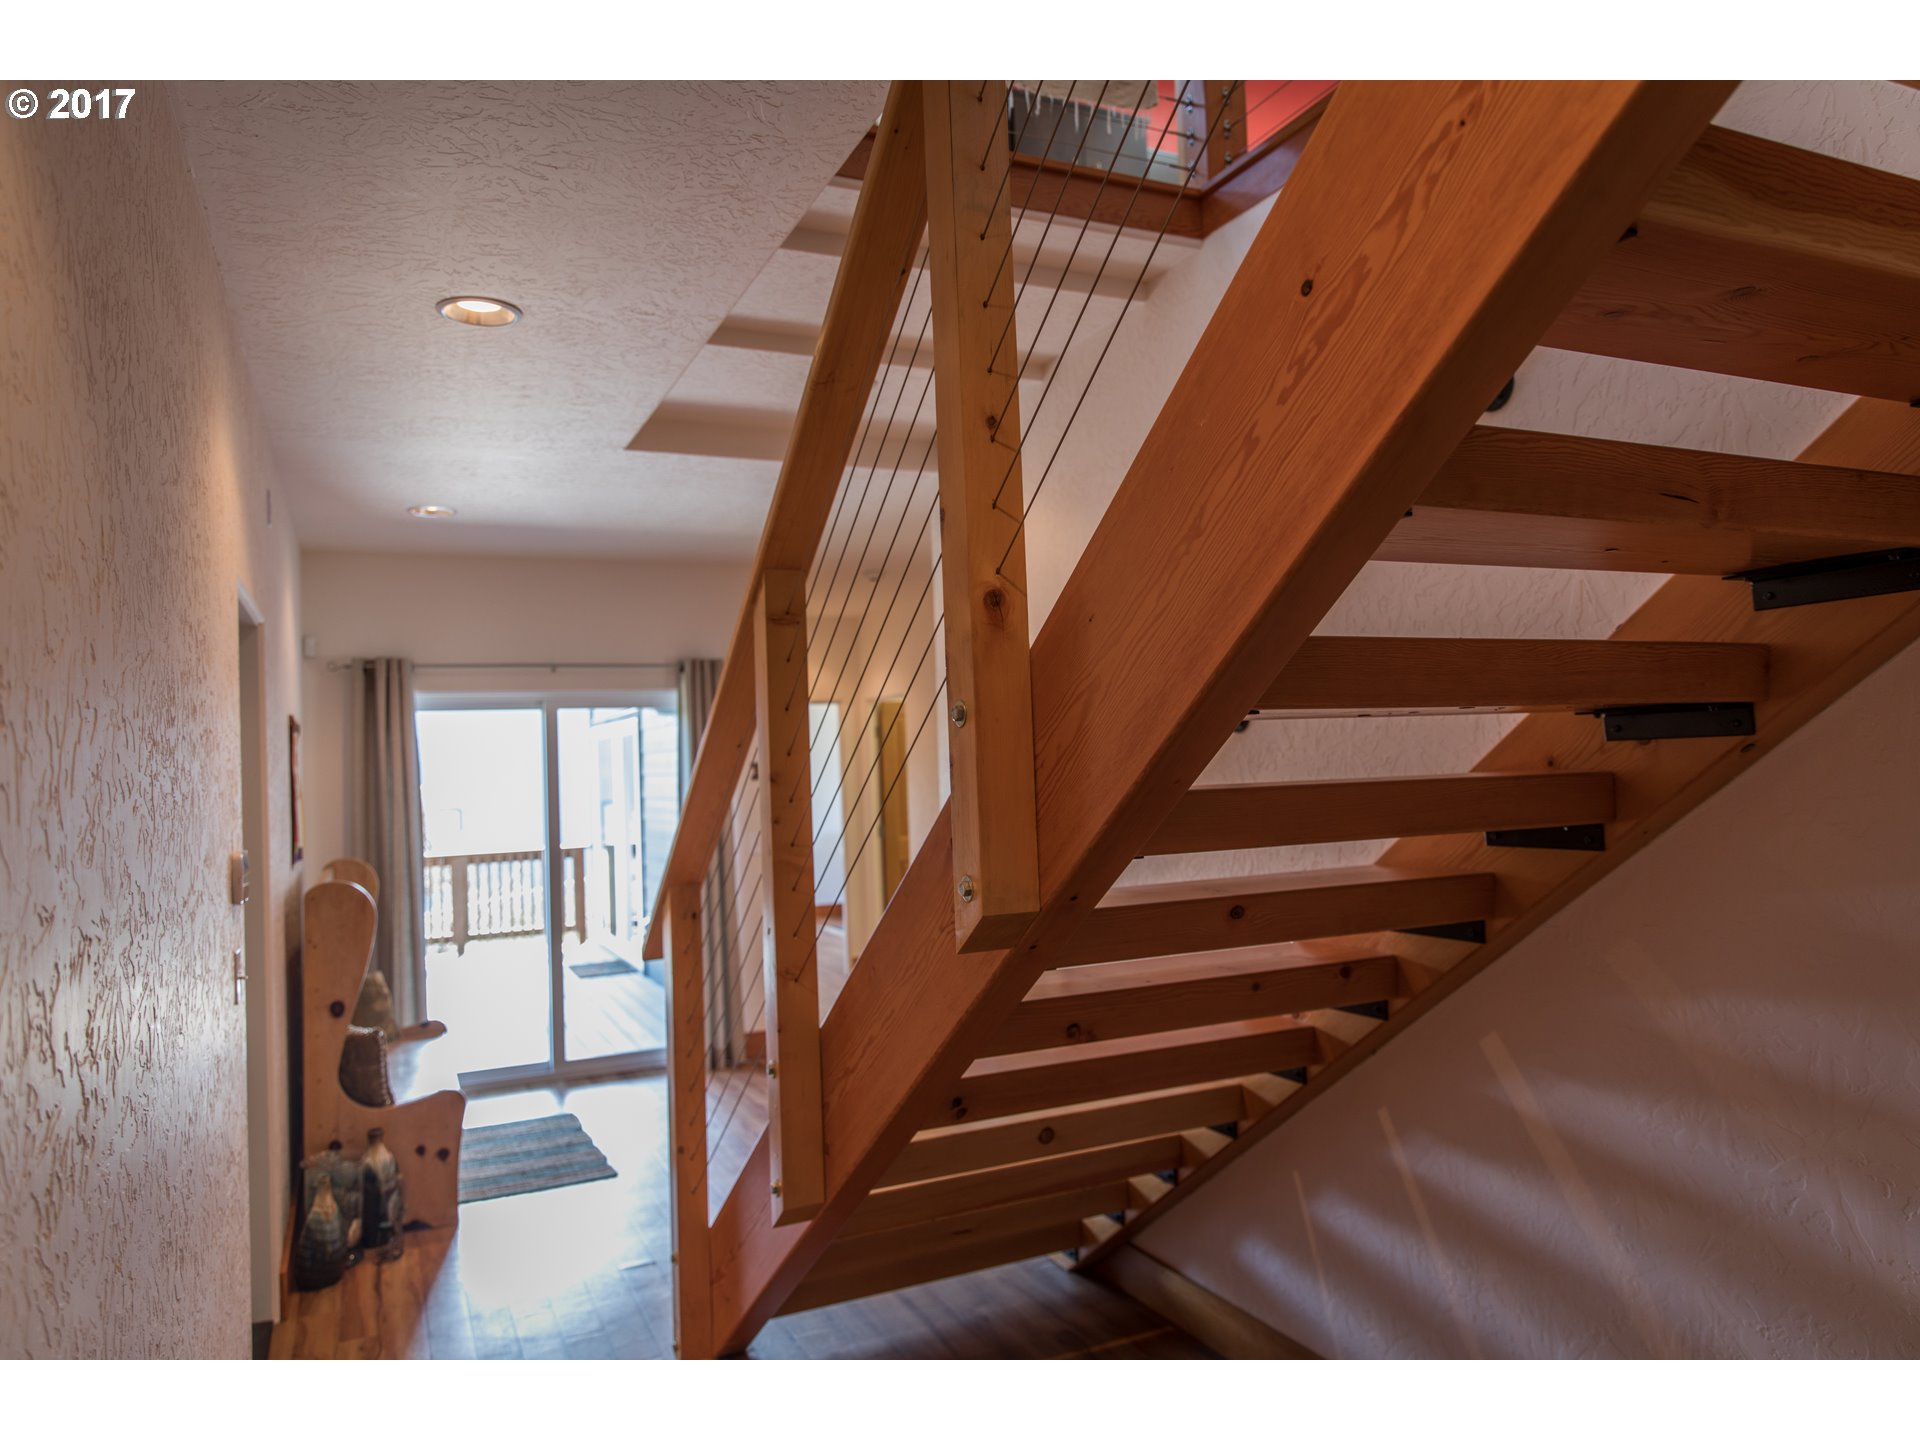 475 FIFTH ST, PORT ORFORD, OR 97465  Photo 14